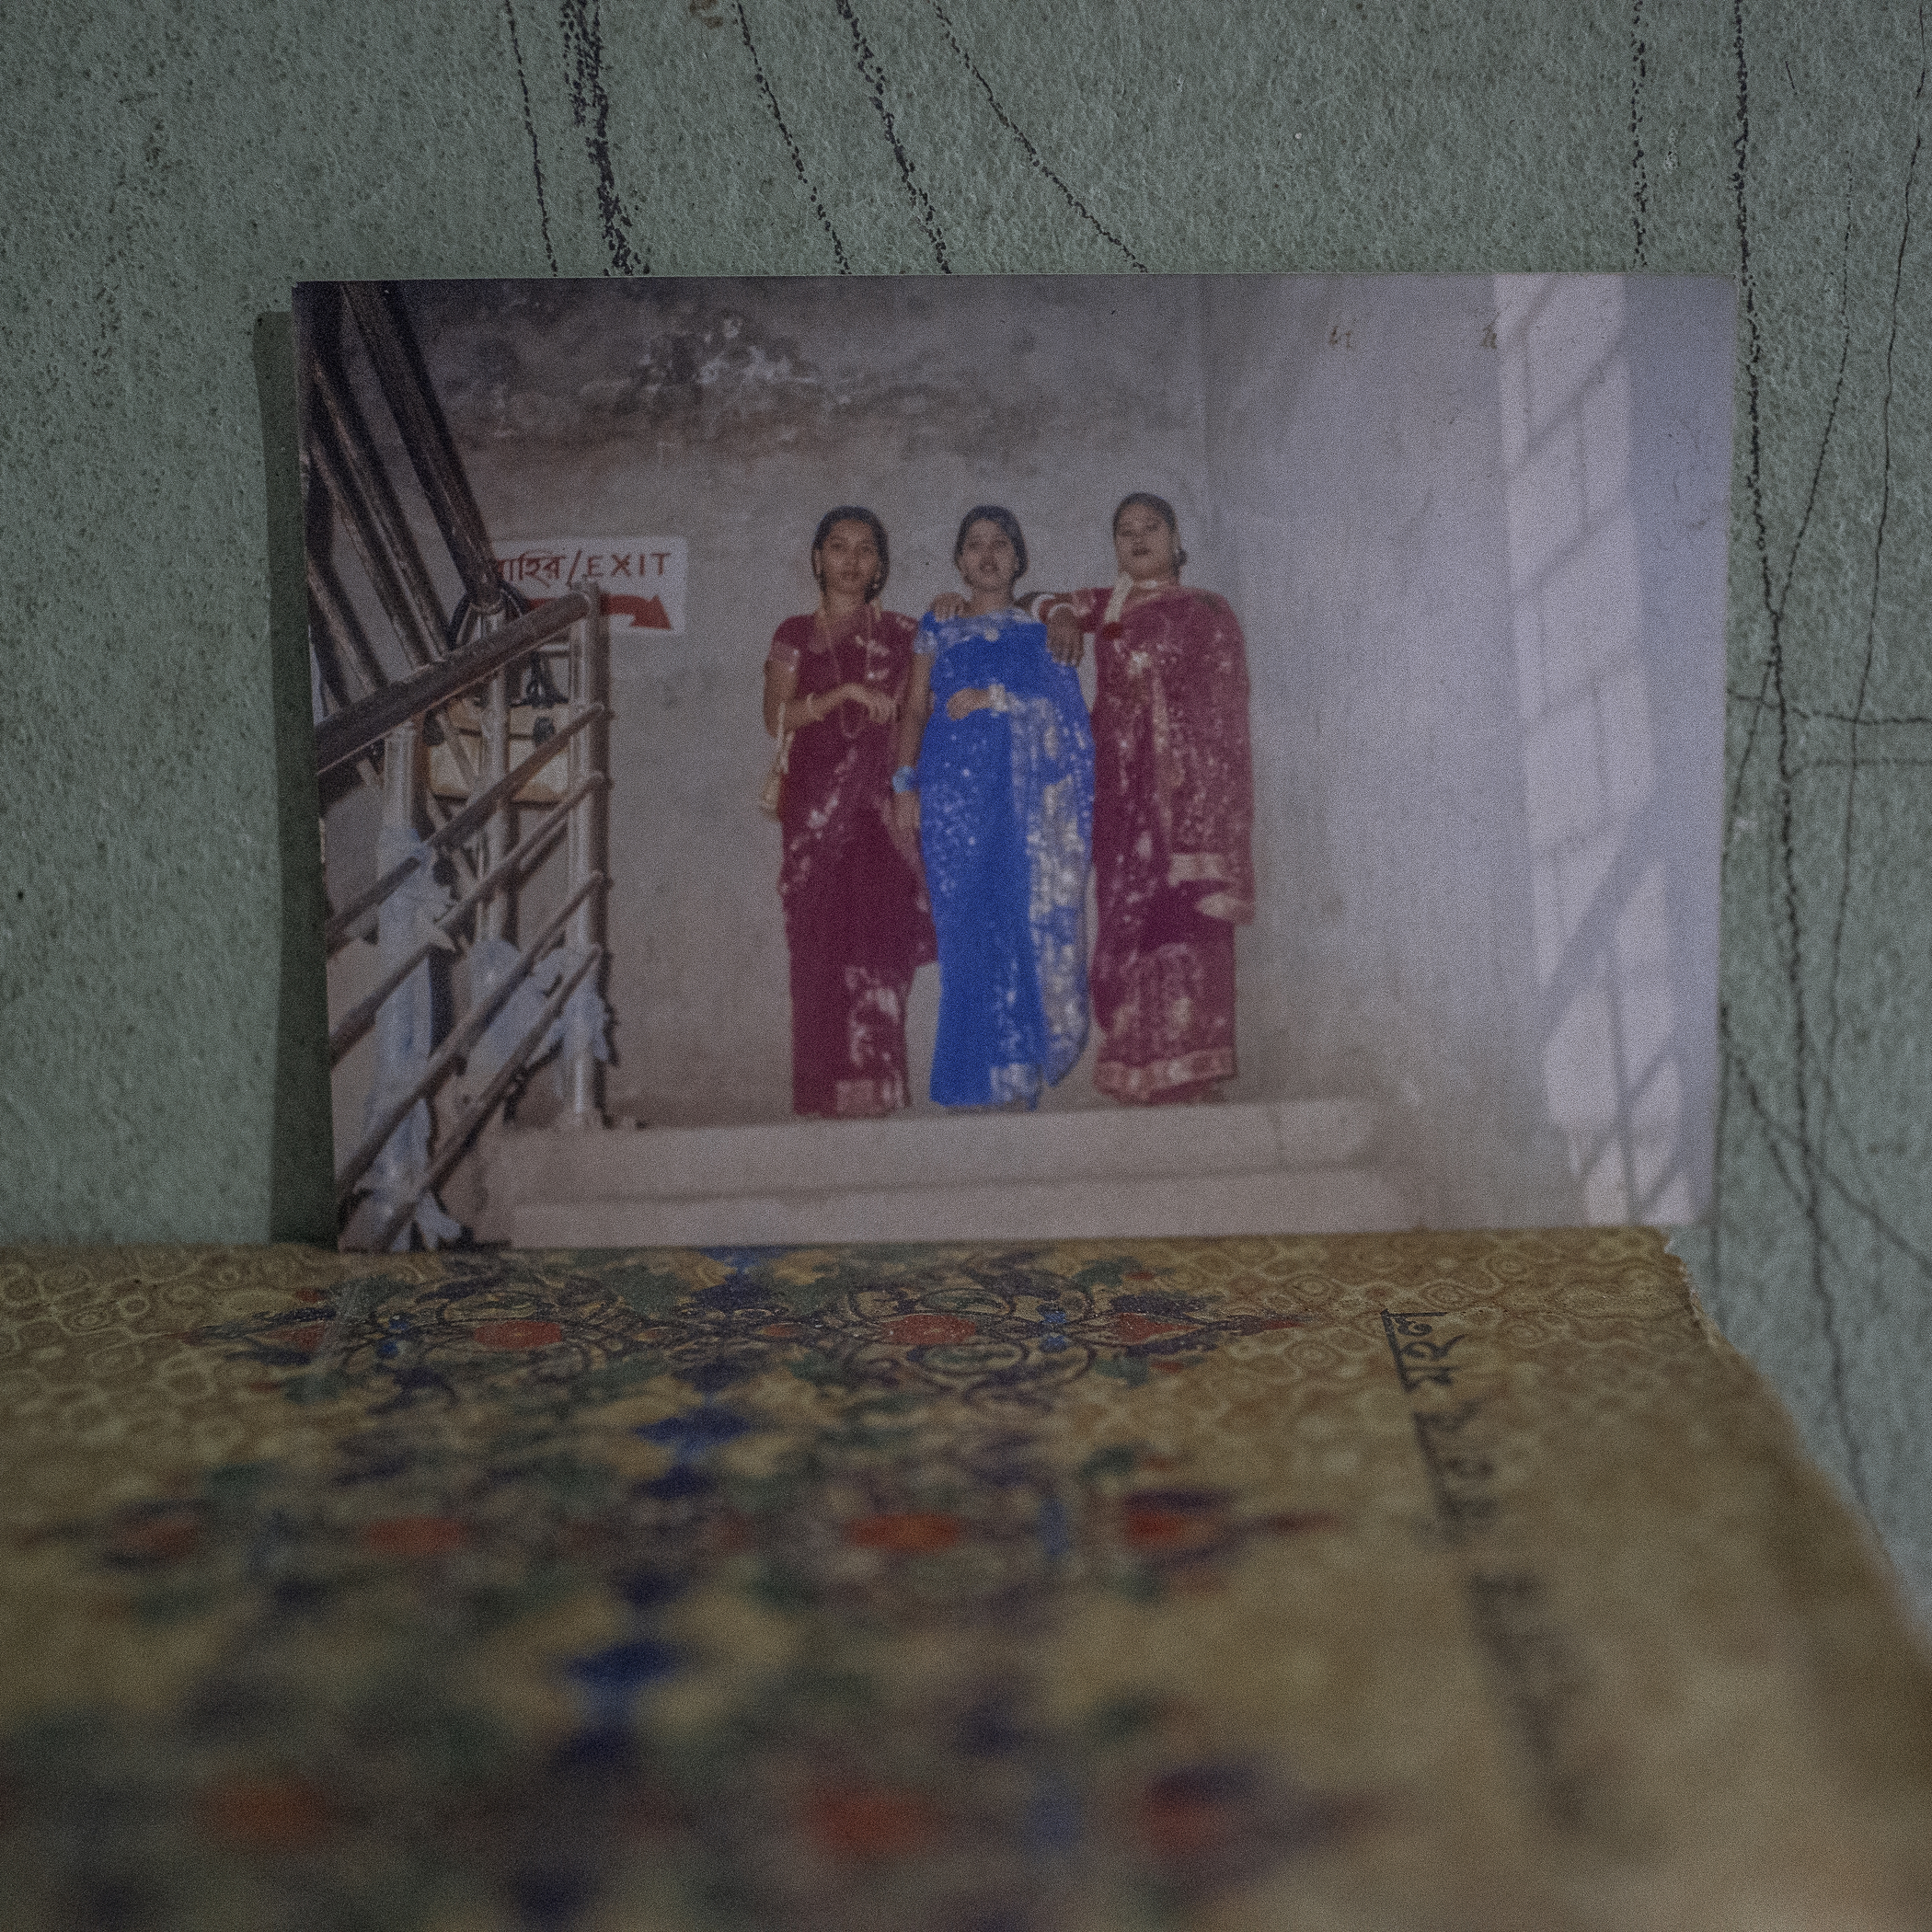 Lipi Aktar with her friends who died in Rana plaza collapse